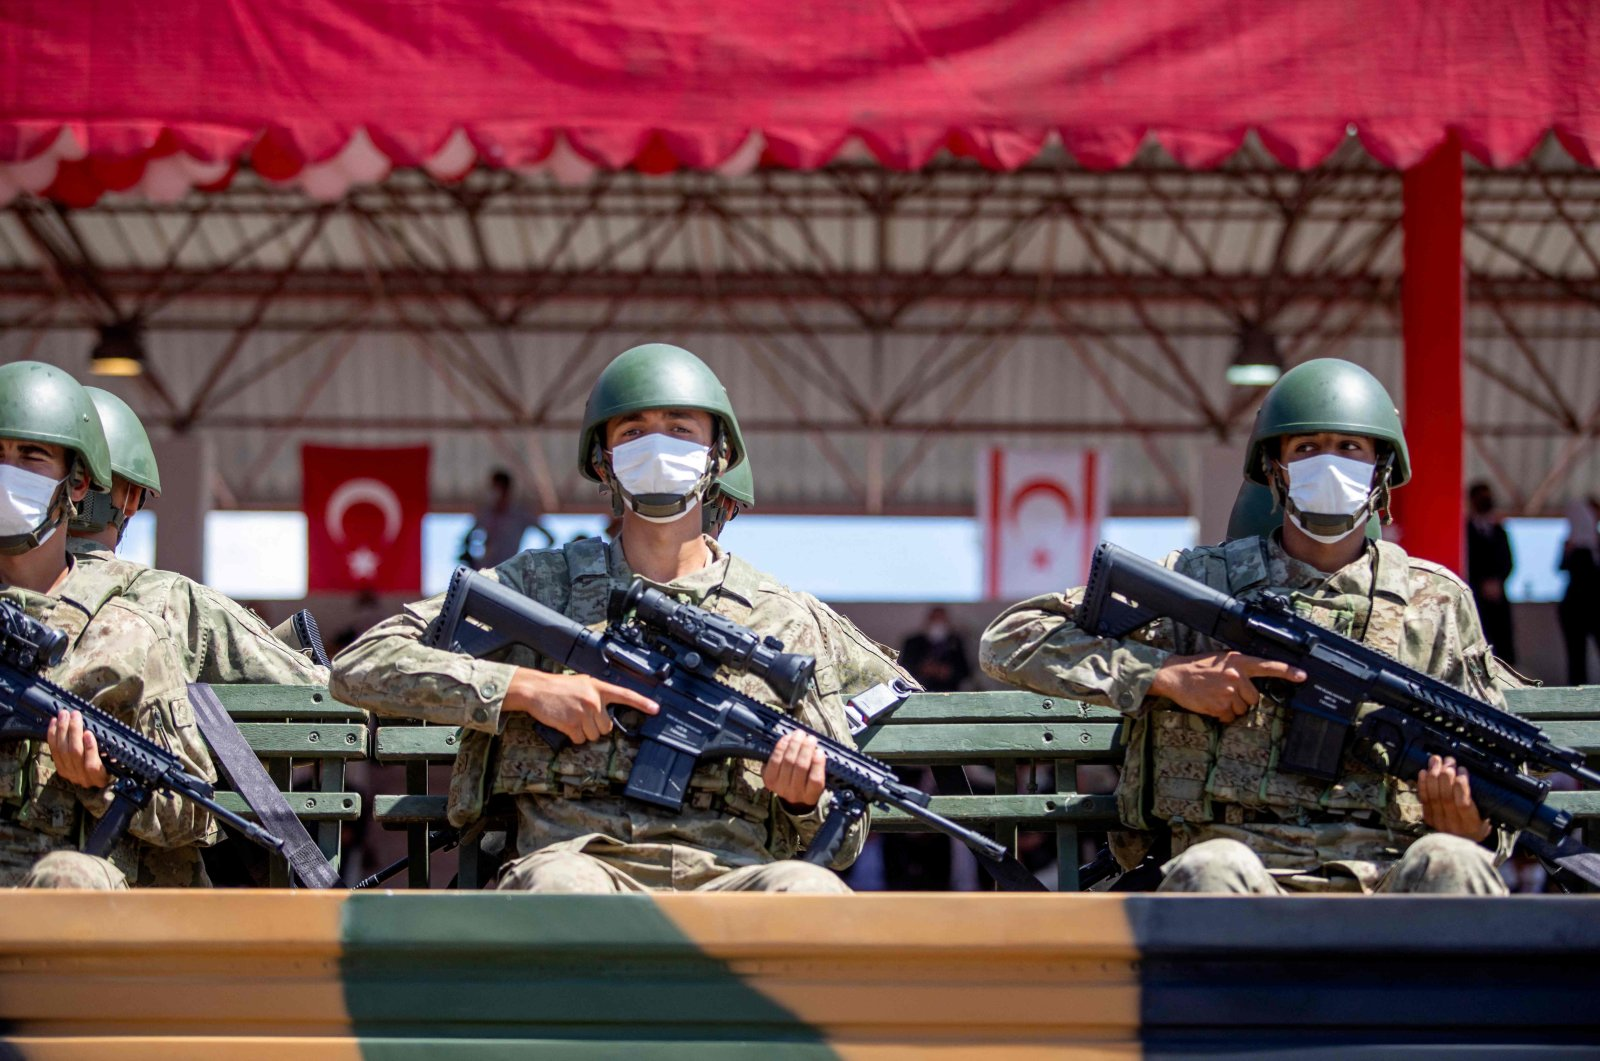 Soldiers take part in a military parade in the Turkish Republic of Northern Cyprus on July 20, 2021. (AFP Photo)